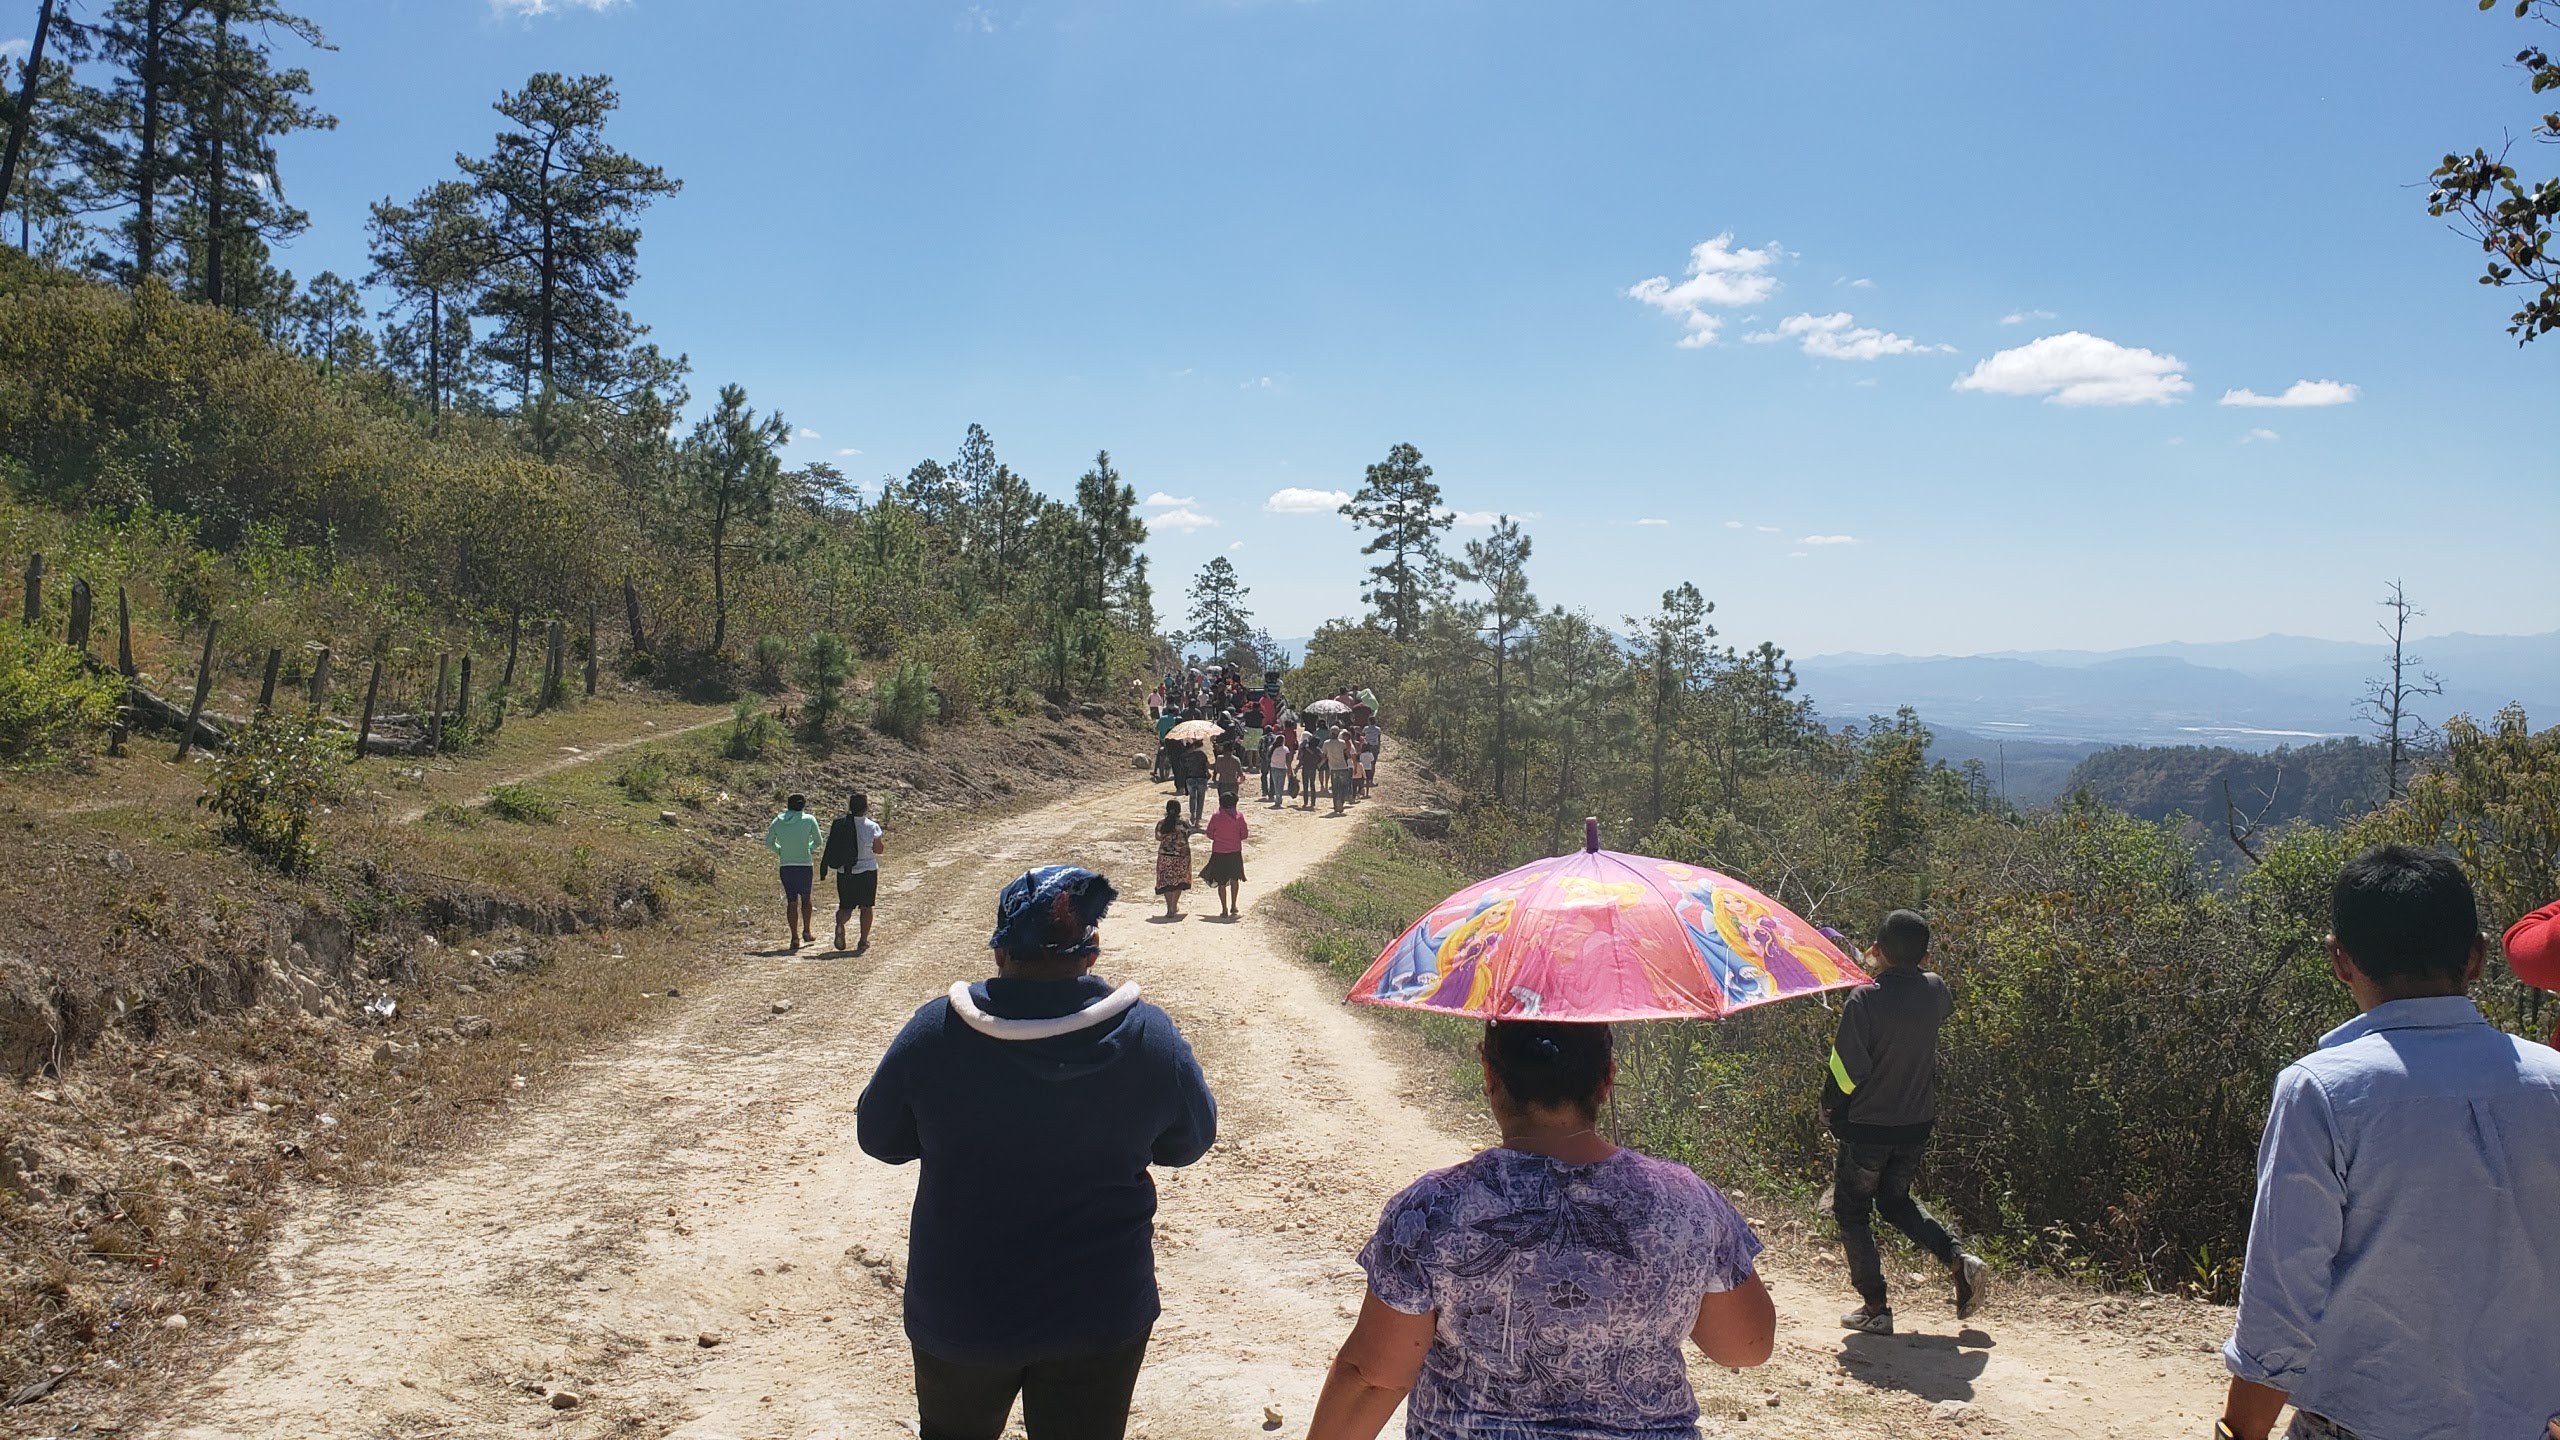 Sun beat down on mourners processing to a cemetery in El Horno, Comayagua, to inter the sister Candida López, wife of Presbyterian pastor Prudencio Vásquez.